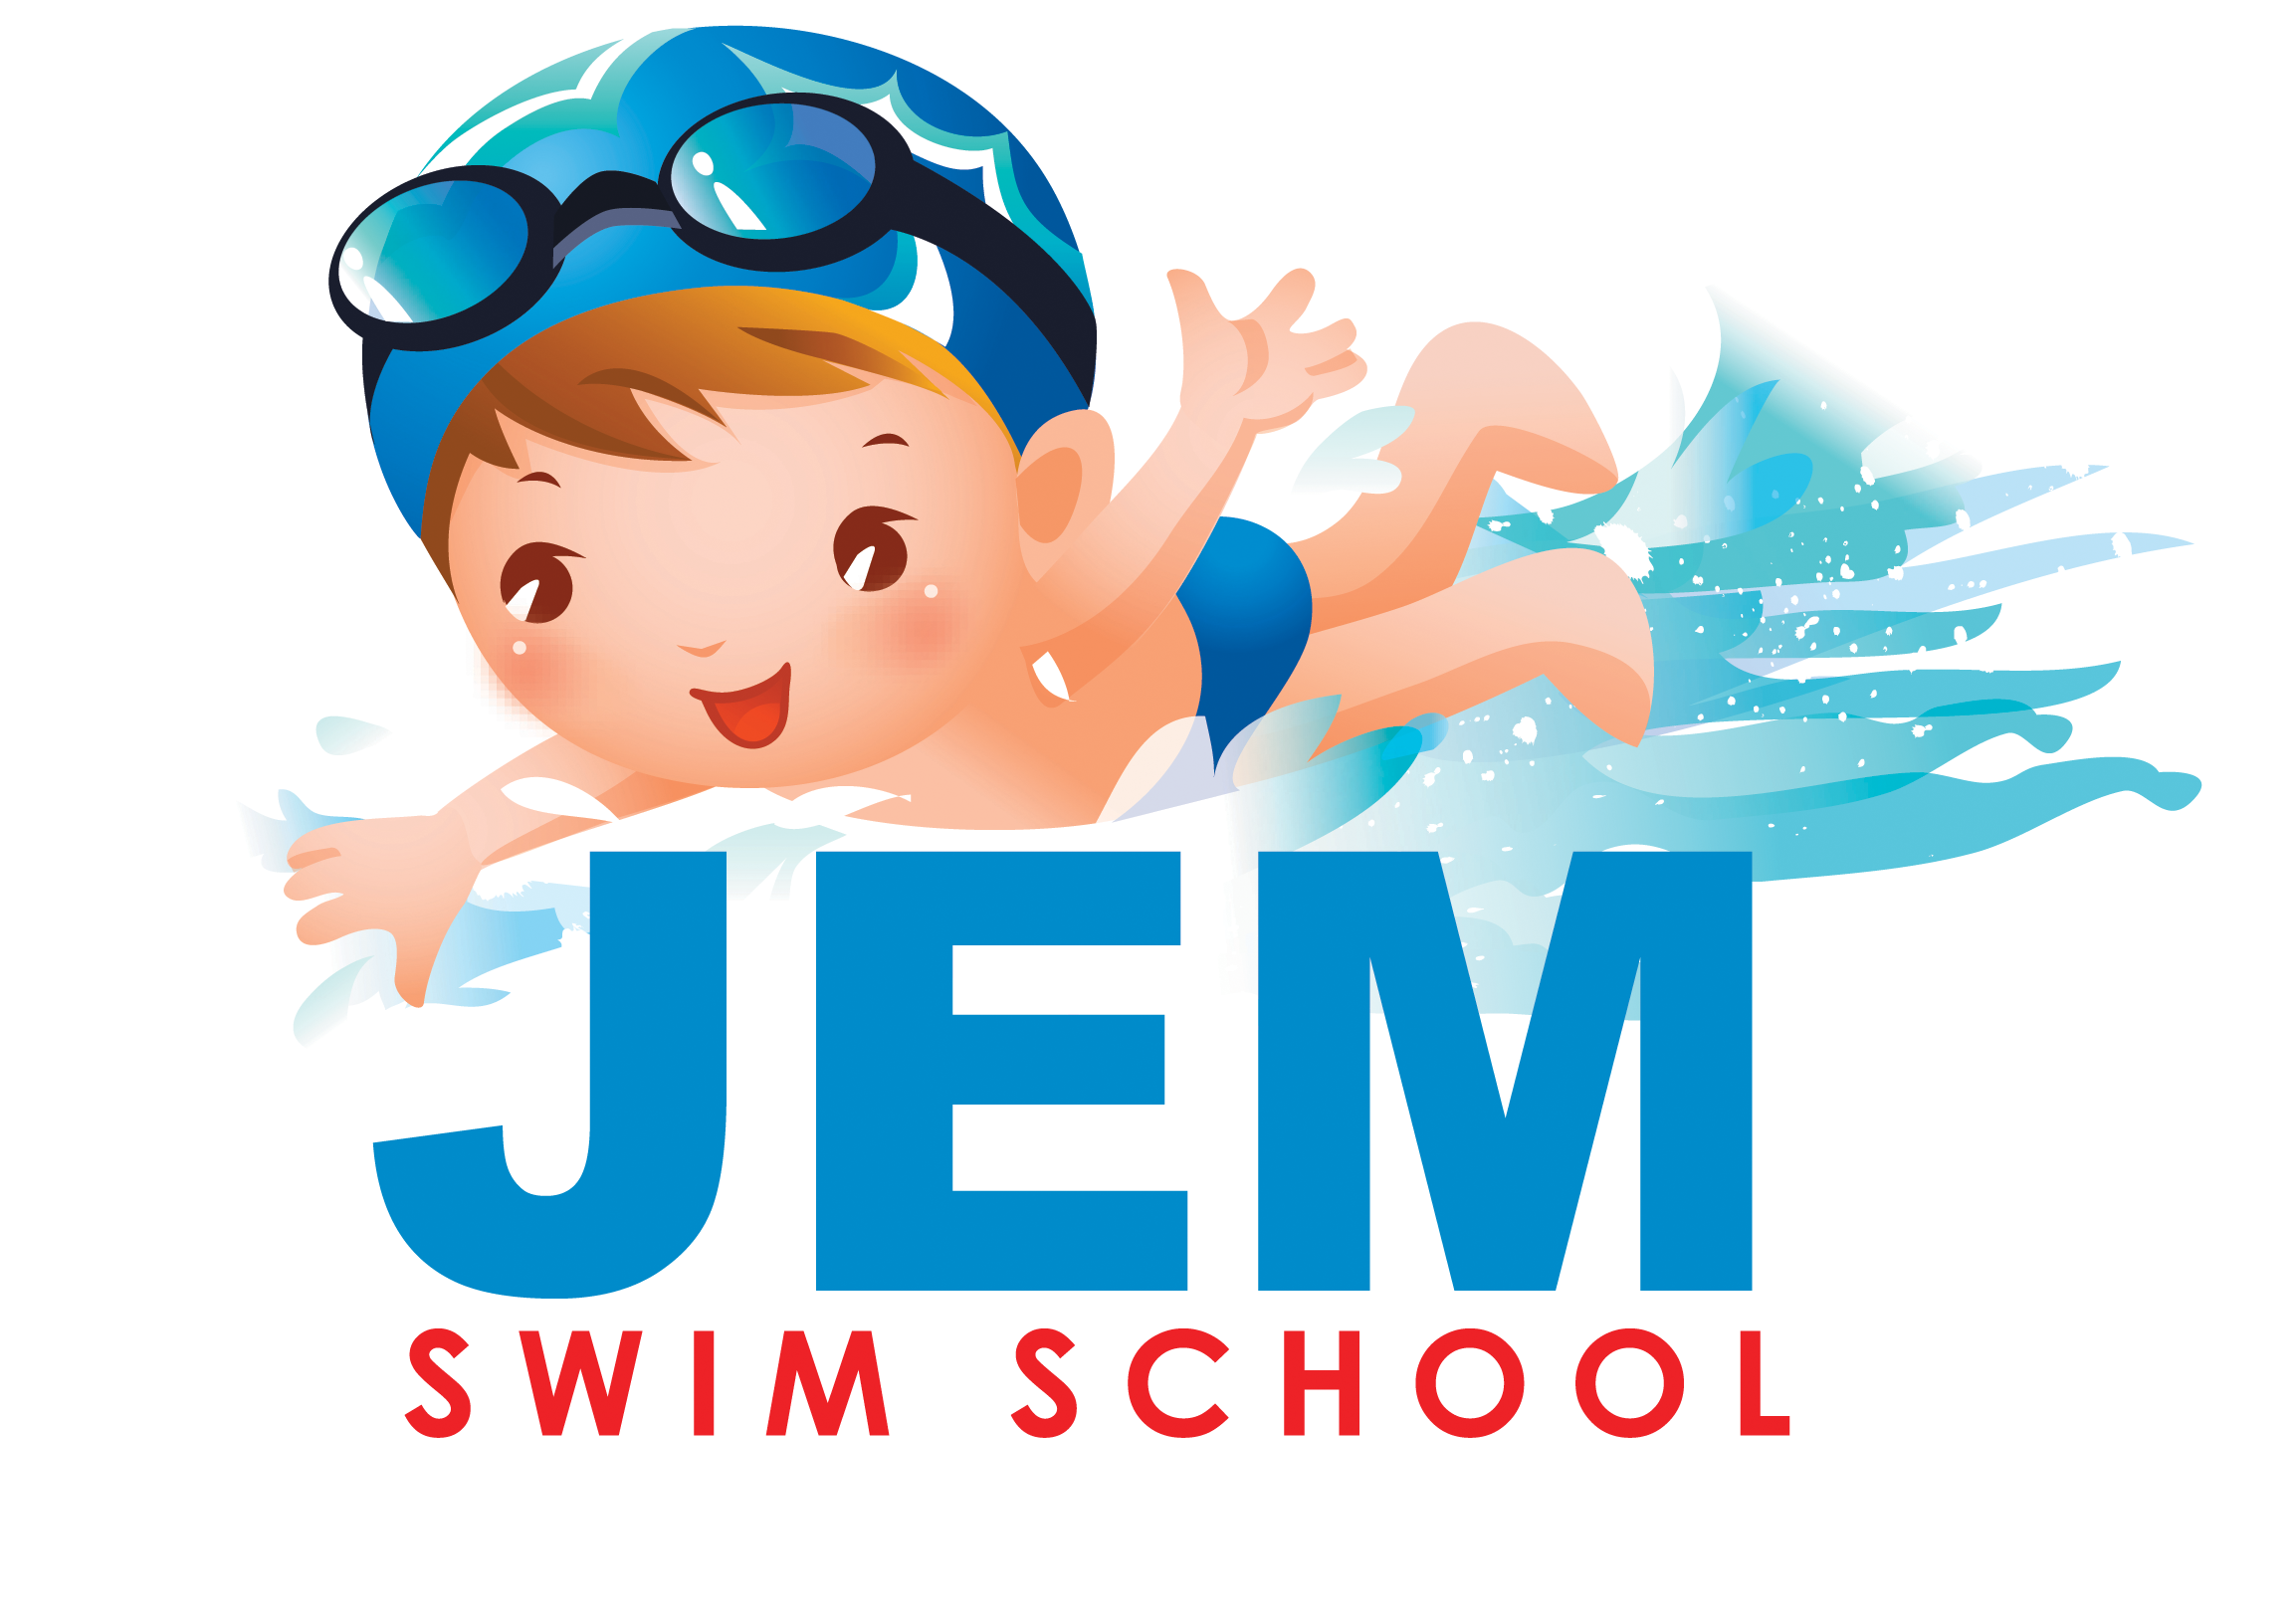 Jem swim school we. Swimsuit clipart swimming stuff